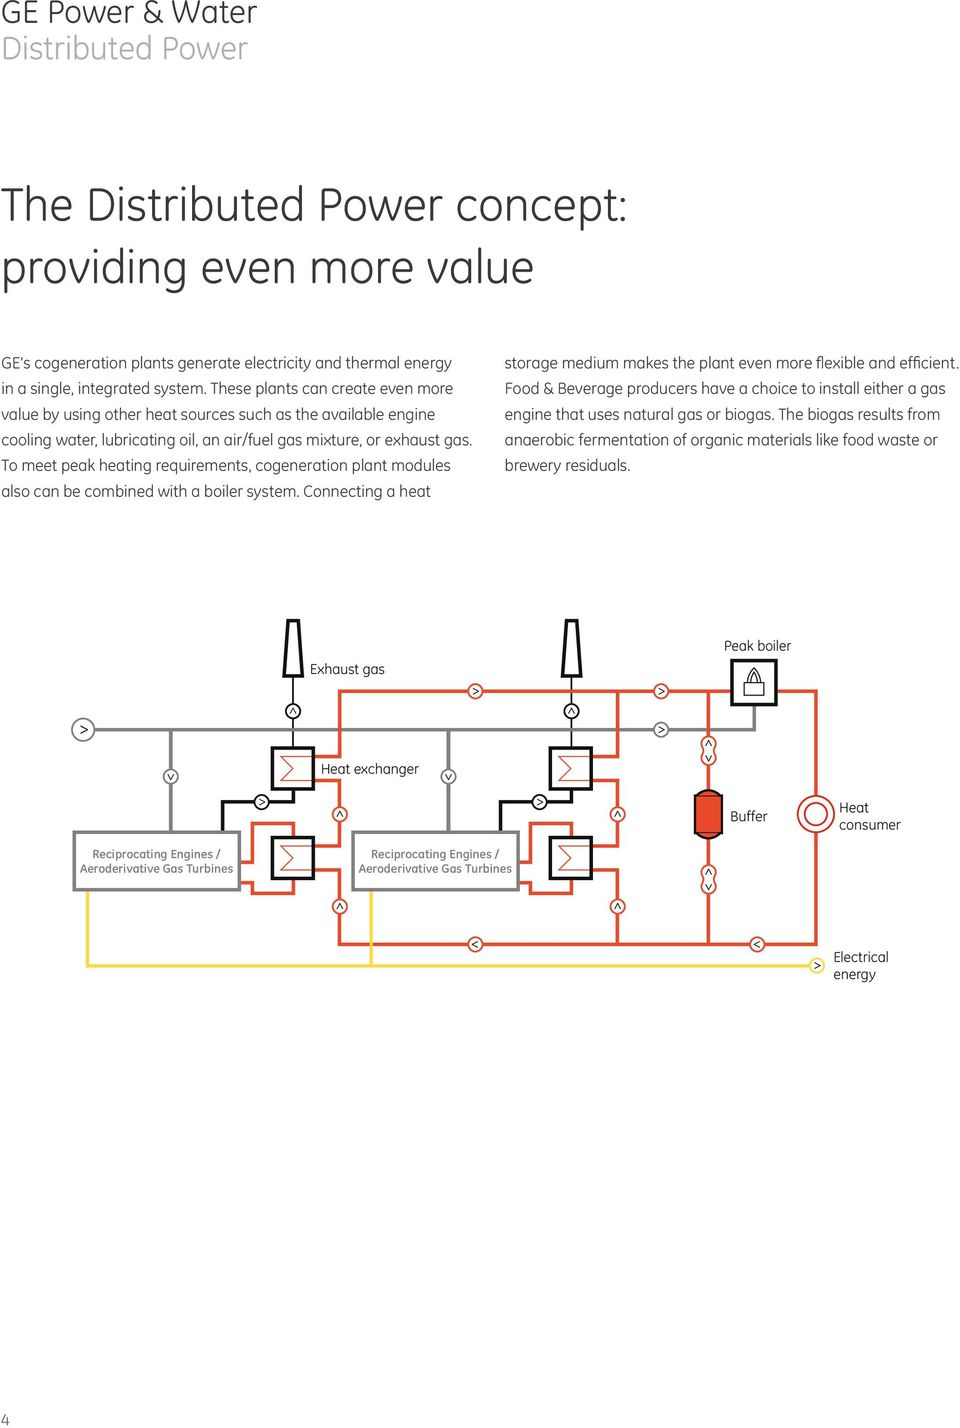 To meet peak heating requirements, cogeneration plant modules also can be combined with a boiler system. Connecting a heat storage medium makes the plant even more flexible and efficient.